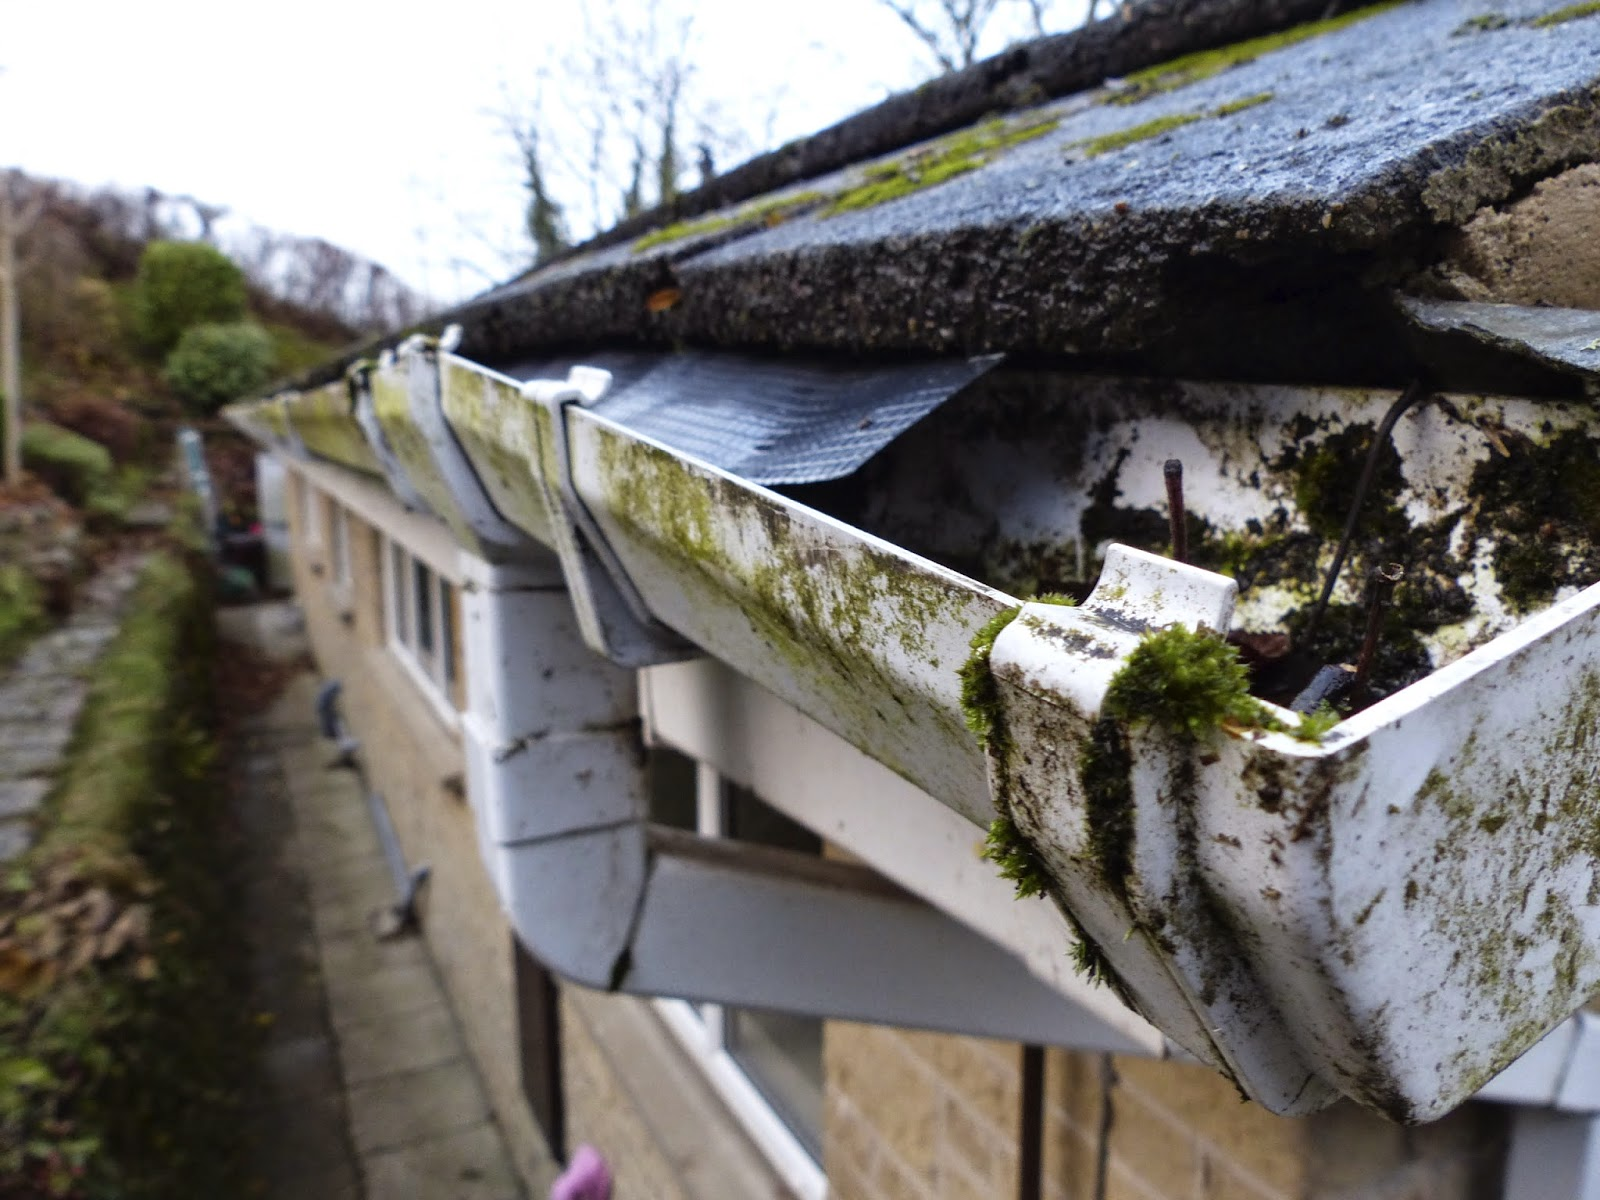 All Aluminum Gutters Three Types Of Gutter Damage To Look